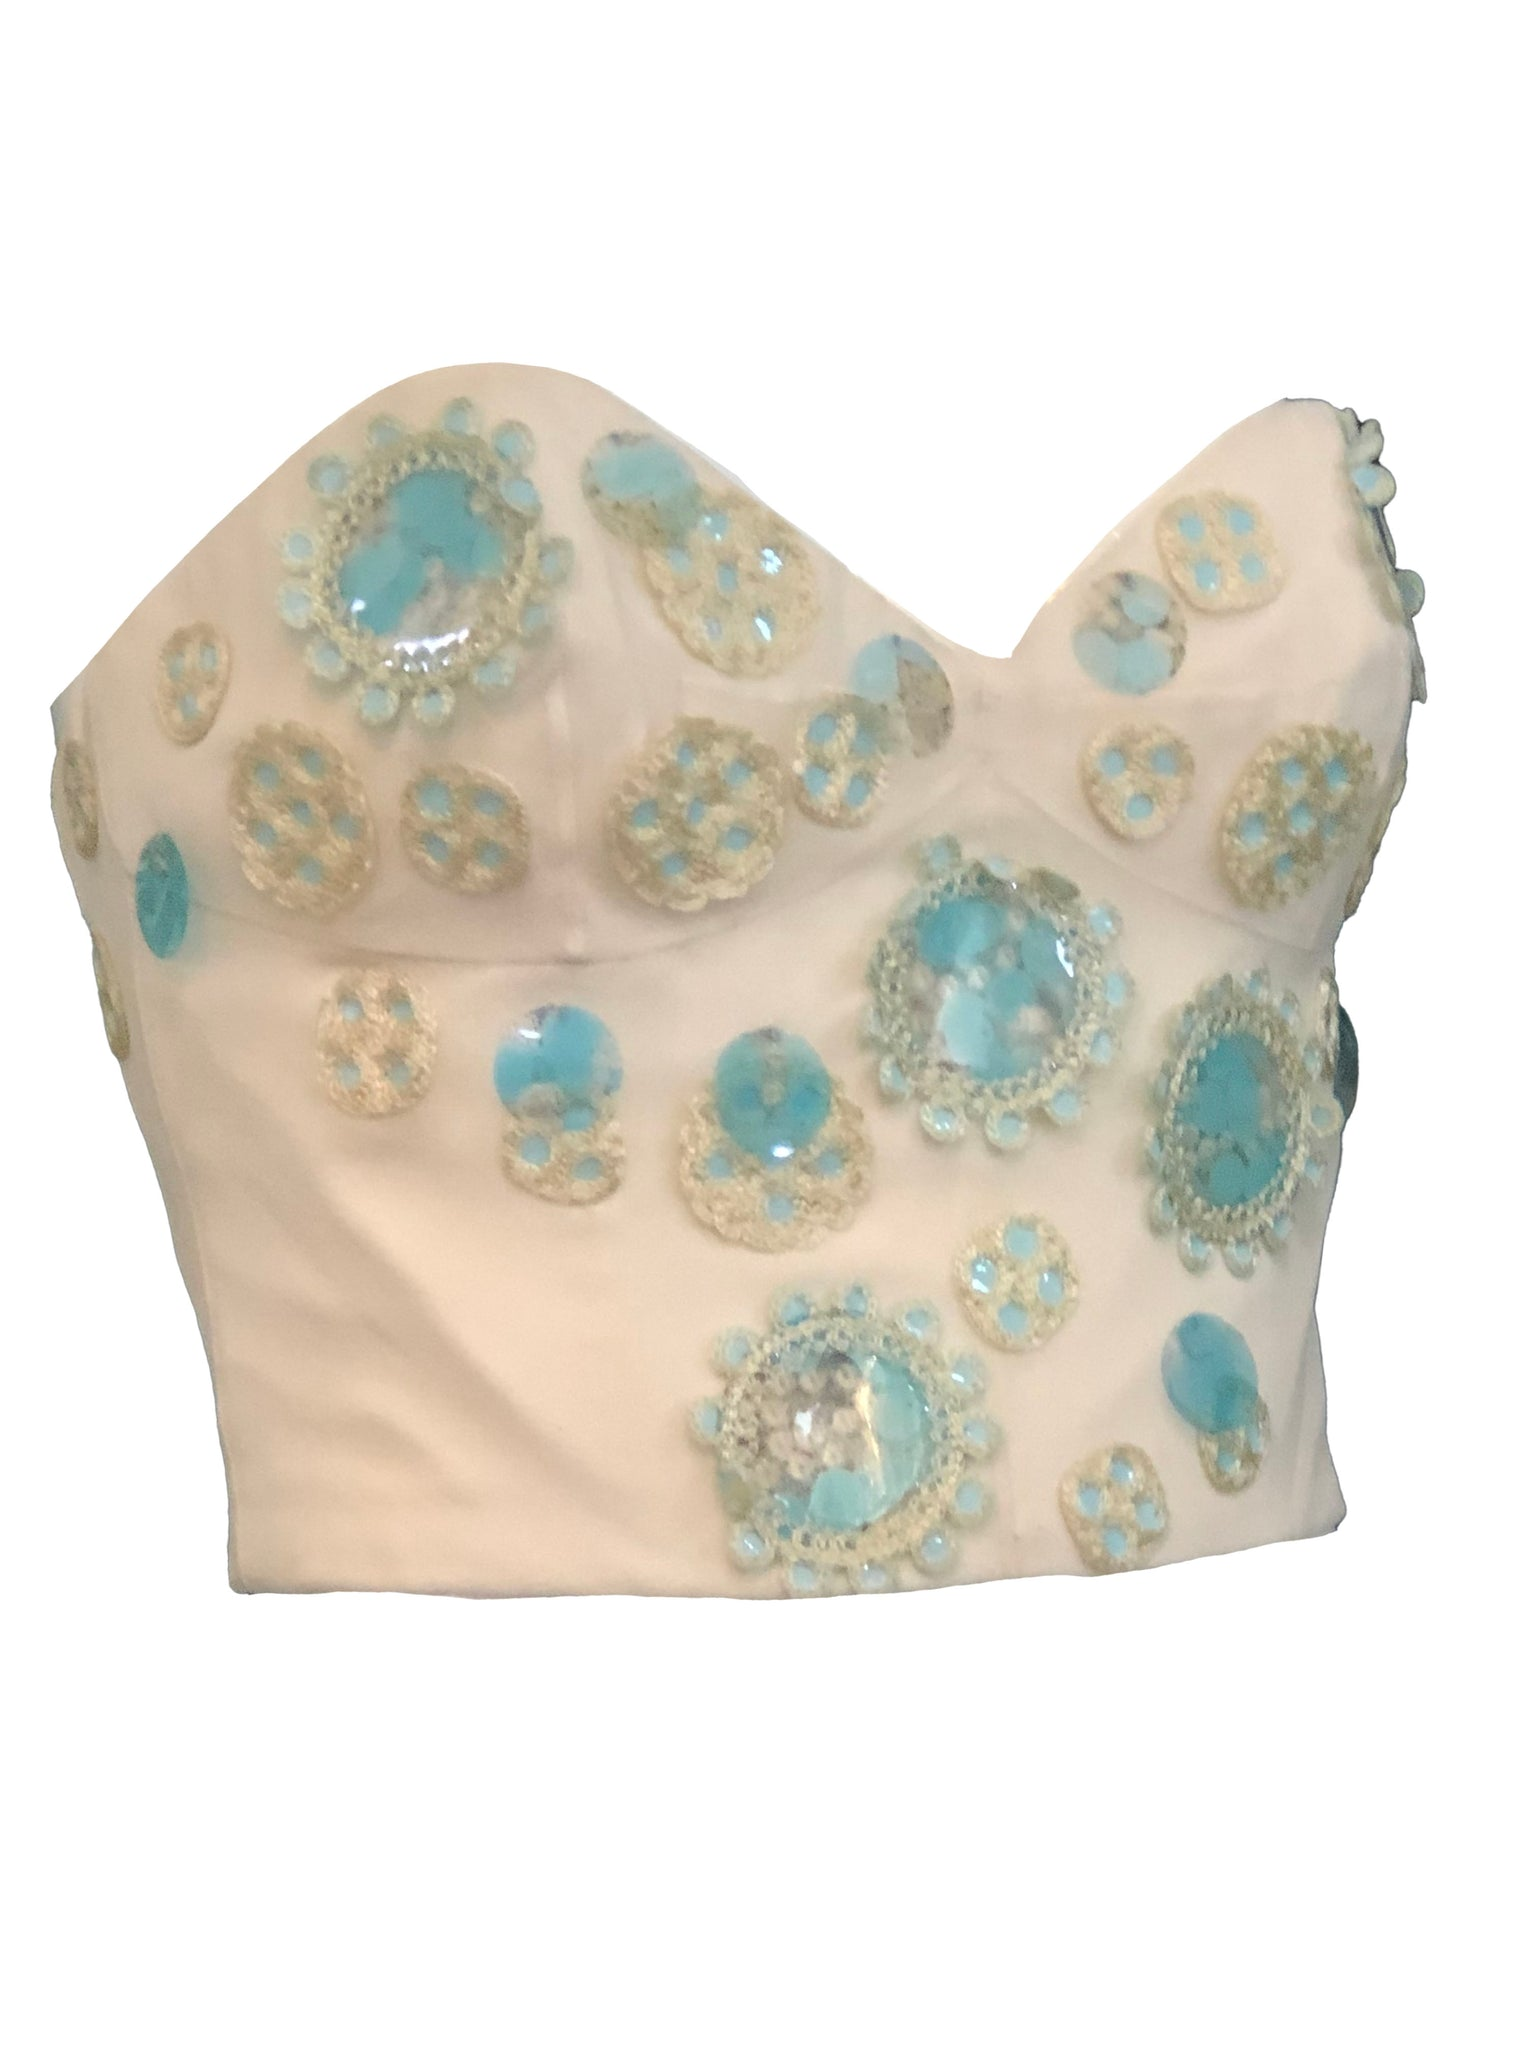 Chloe Early 2000s Ivory Bustier with Baby Blue Paillettes SIDE 2 of 5